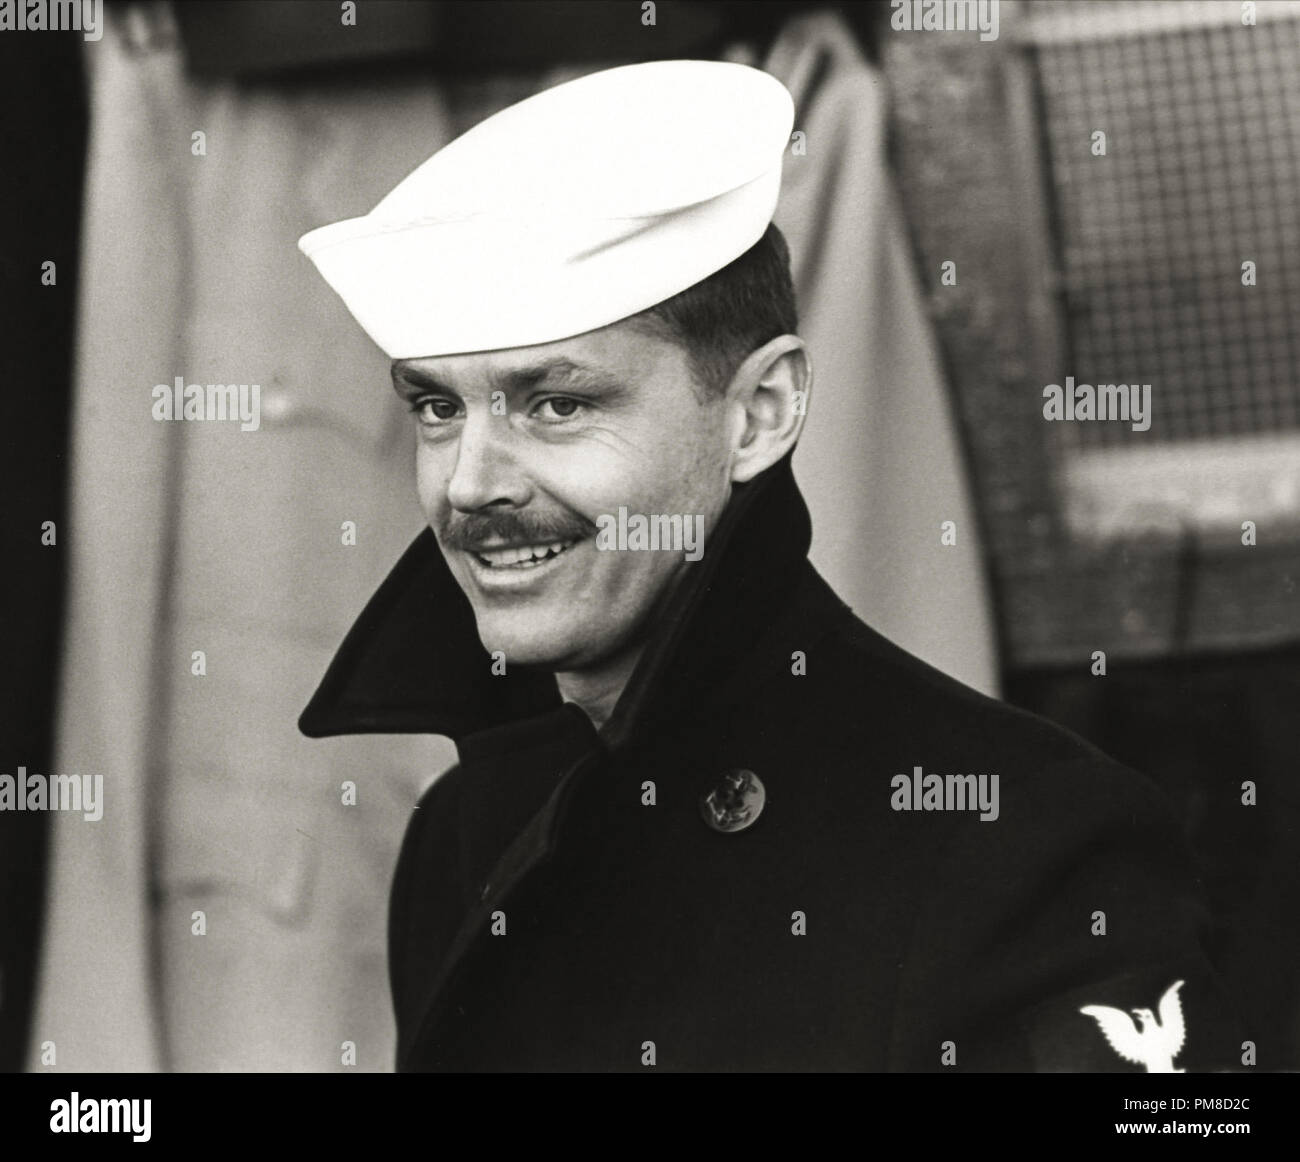 Jack Nicholson, 'The Last Detail' 1973 Columbia Pictures    File Reference # 31955_225THA - Stock Image